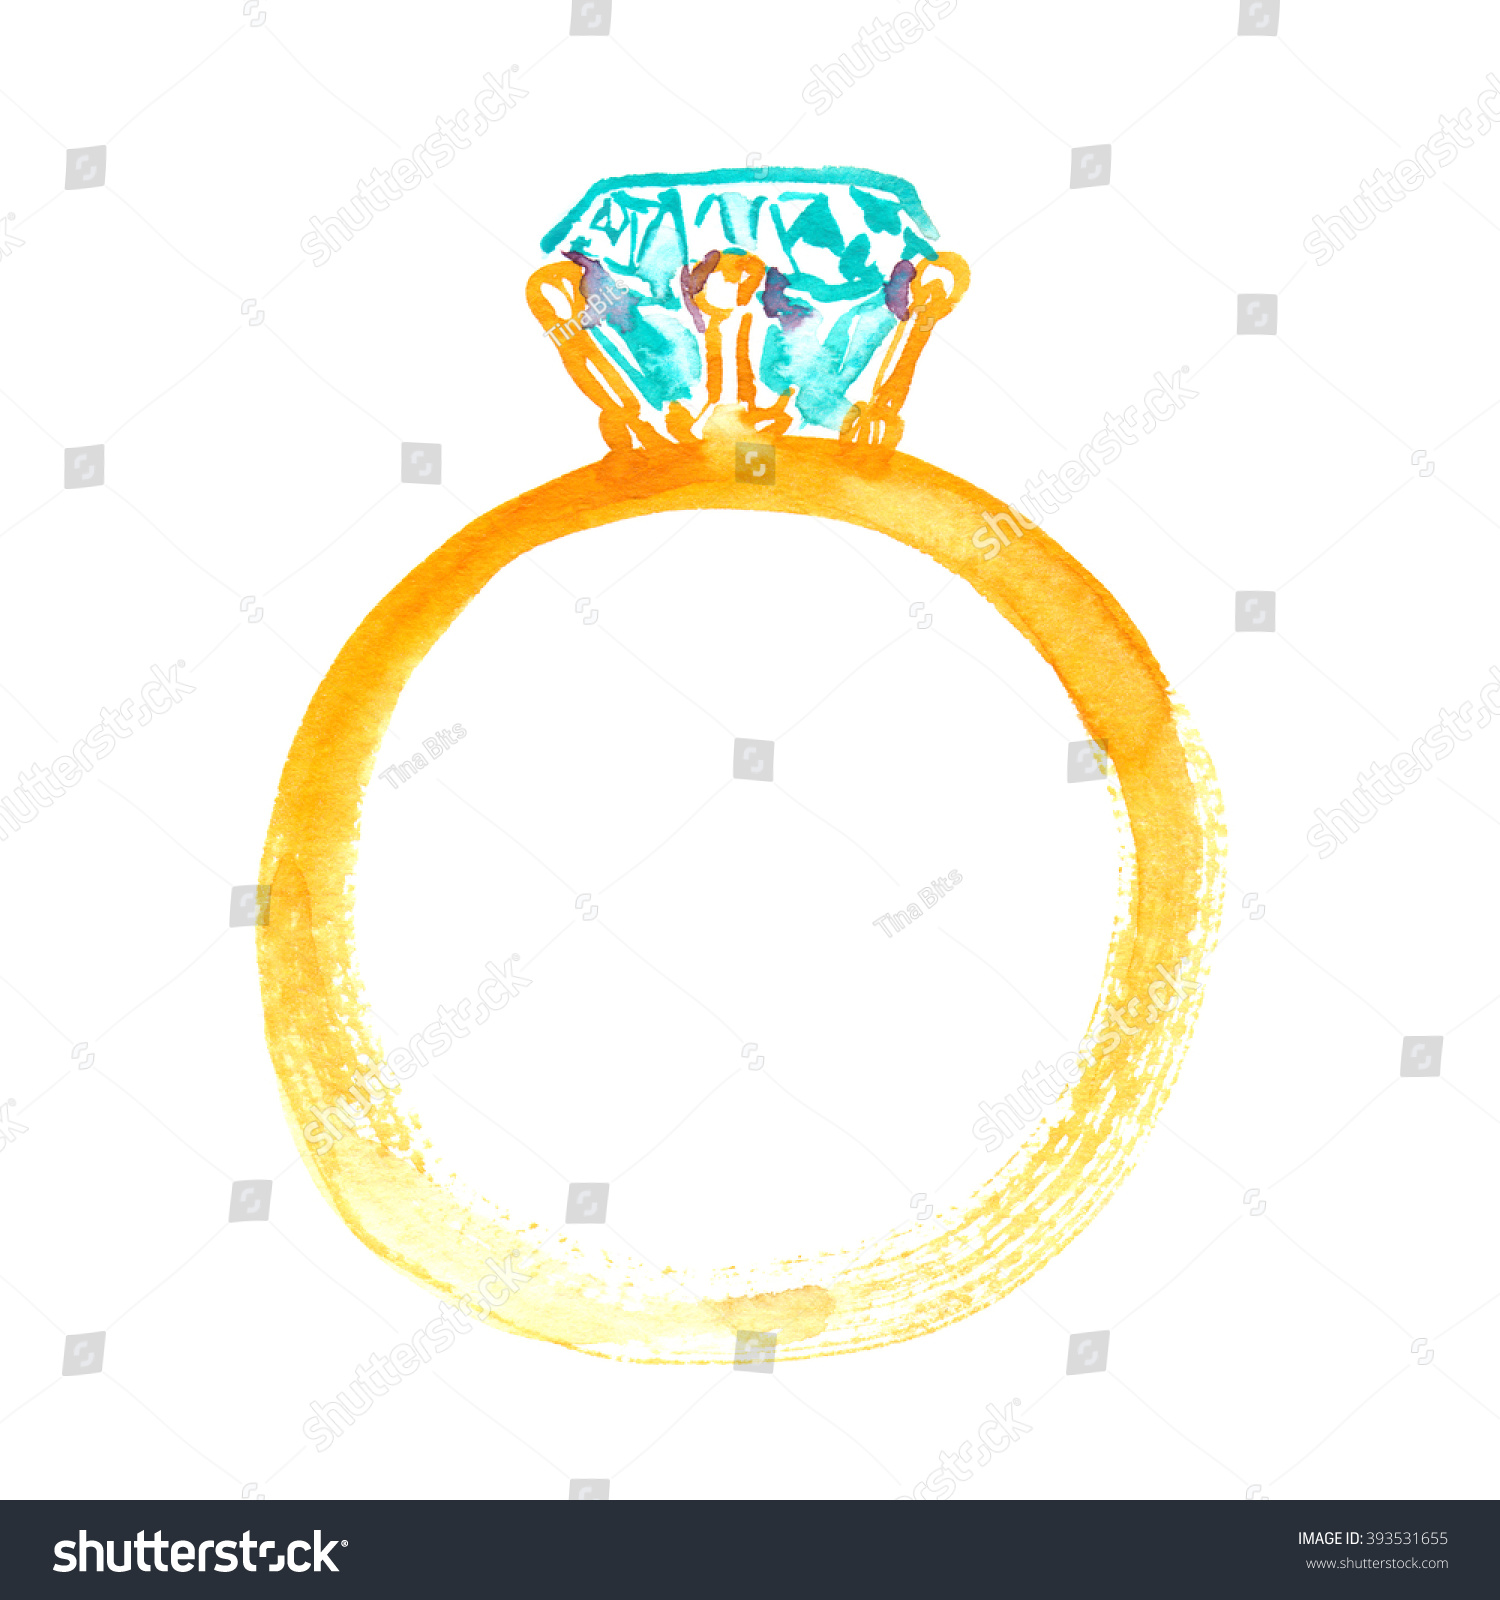 Golden Engagement Ring With Diamond Painted In Watercolor